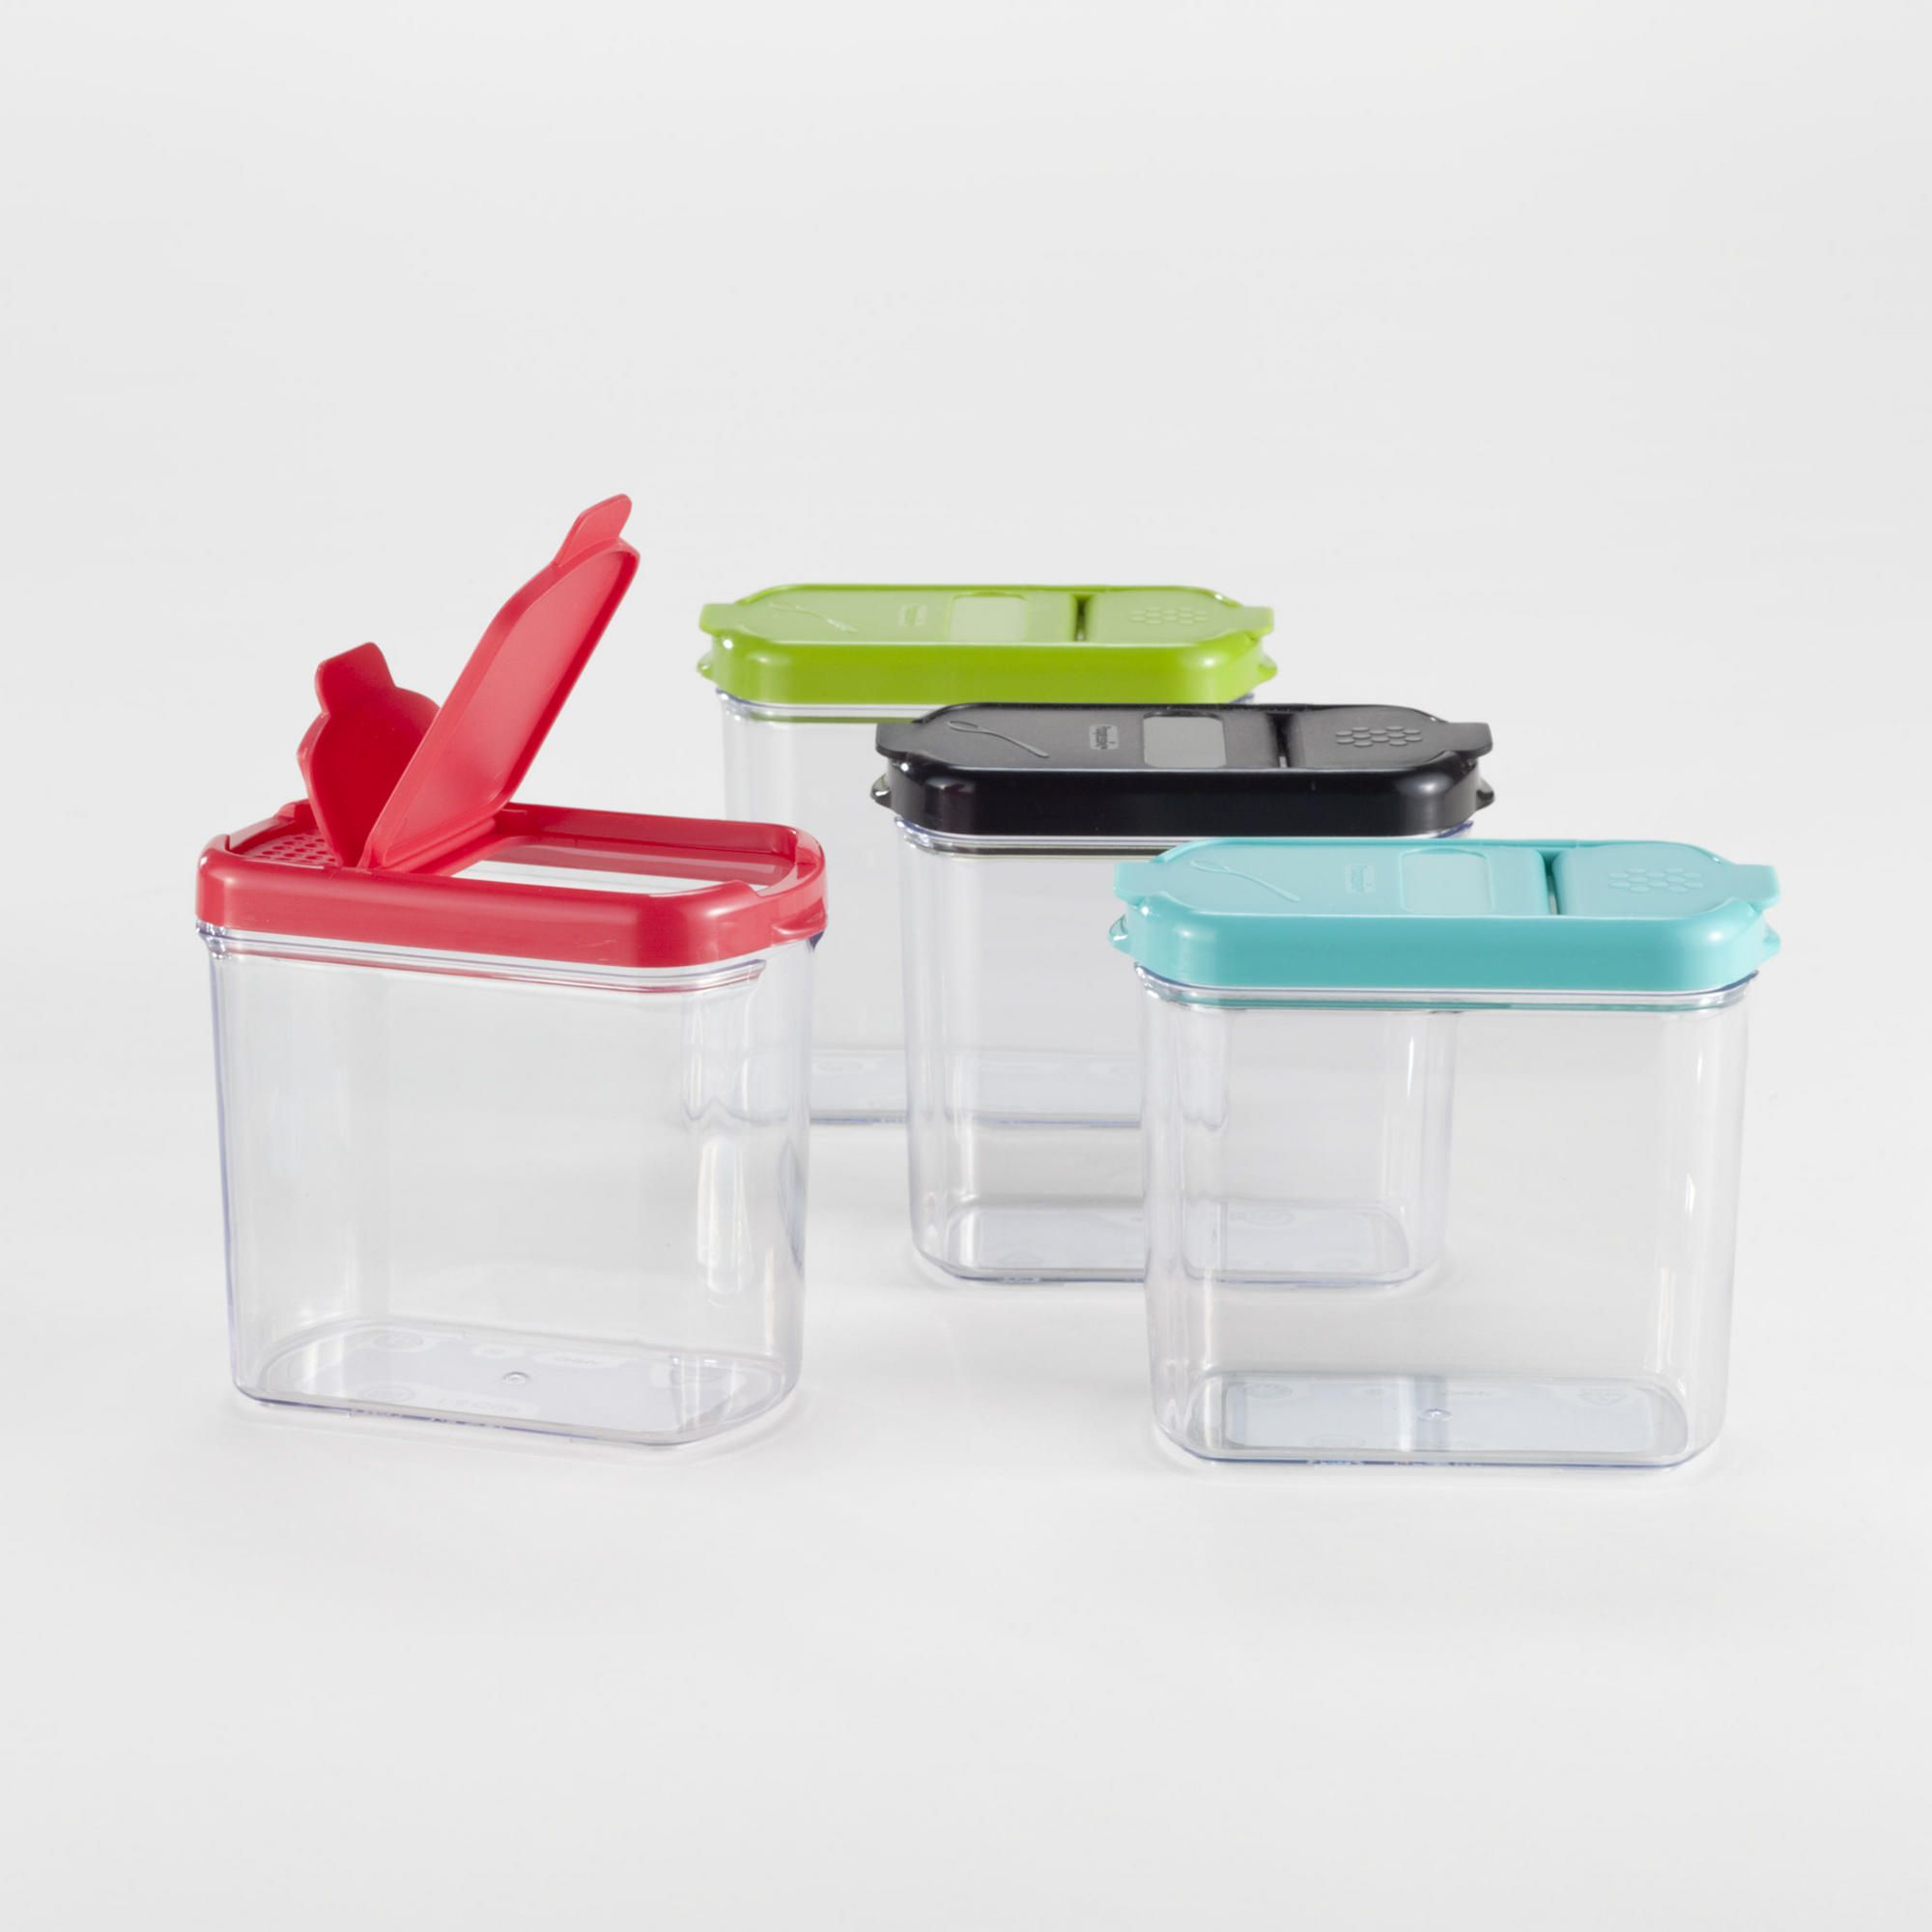 How To Get Stains Out Of Plastic Storage Containers